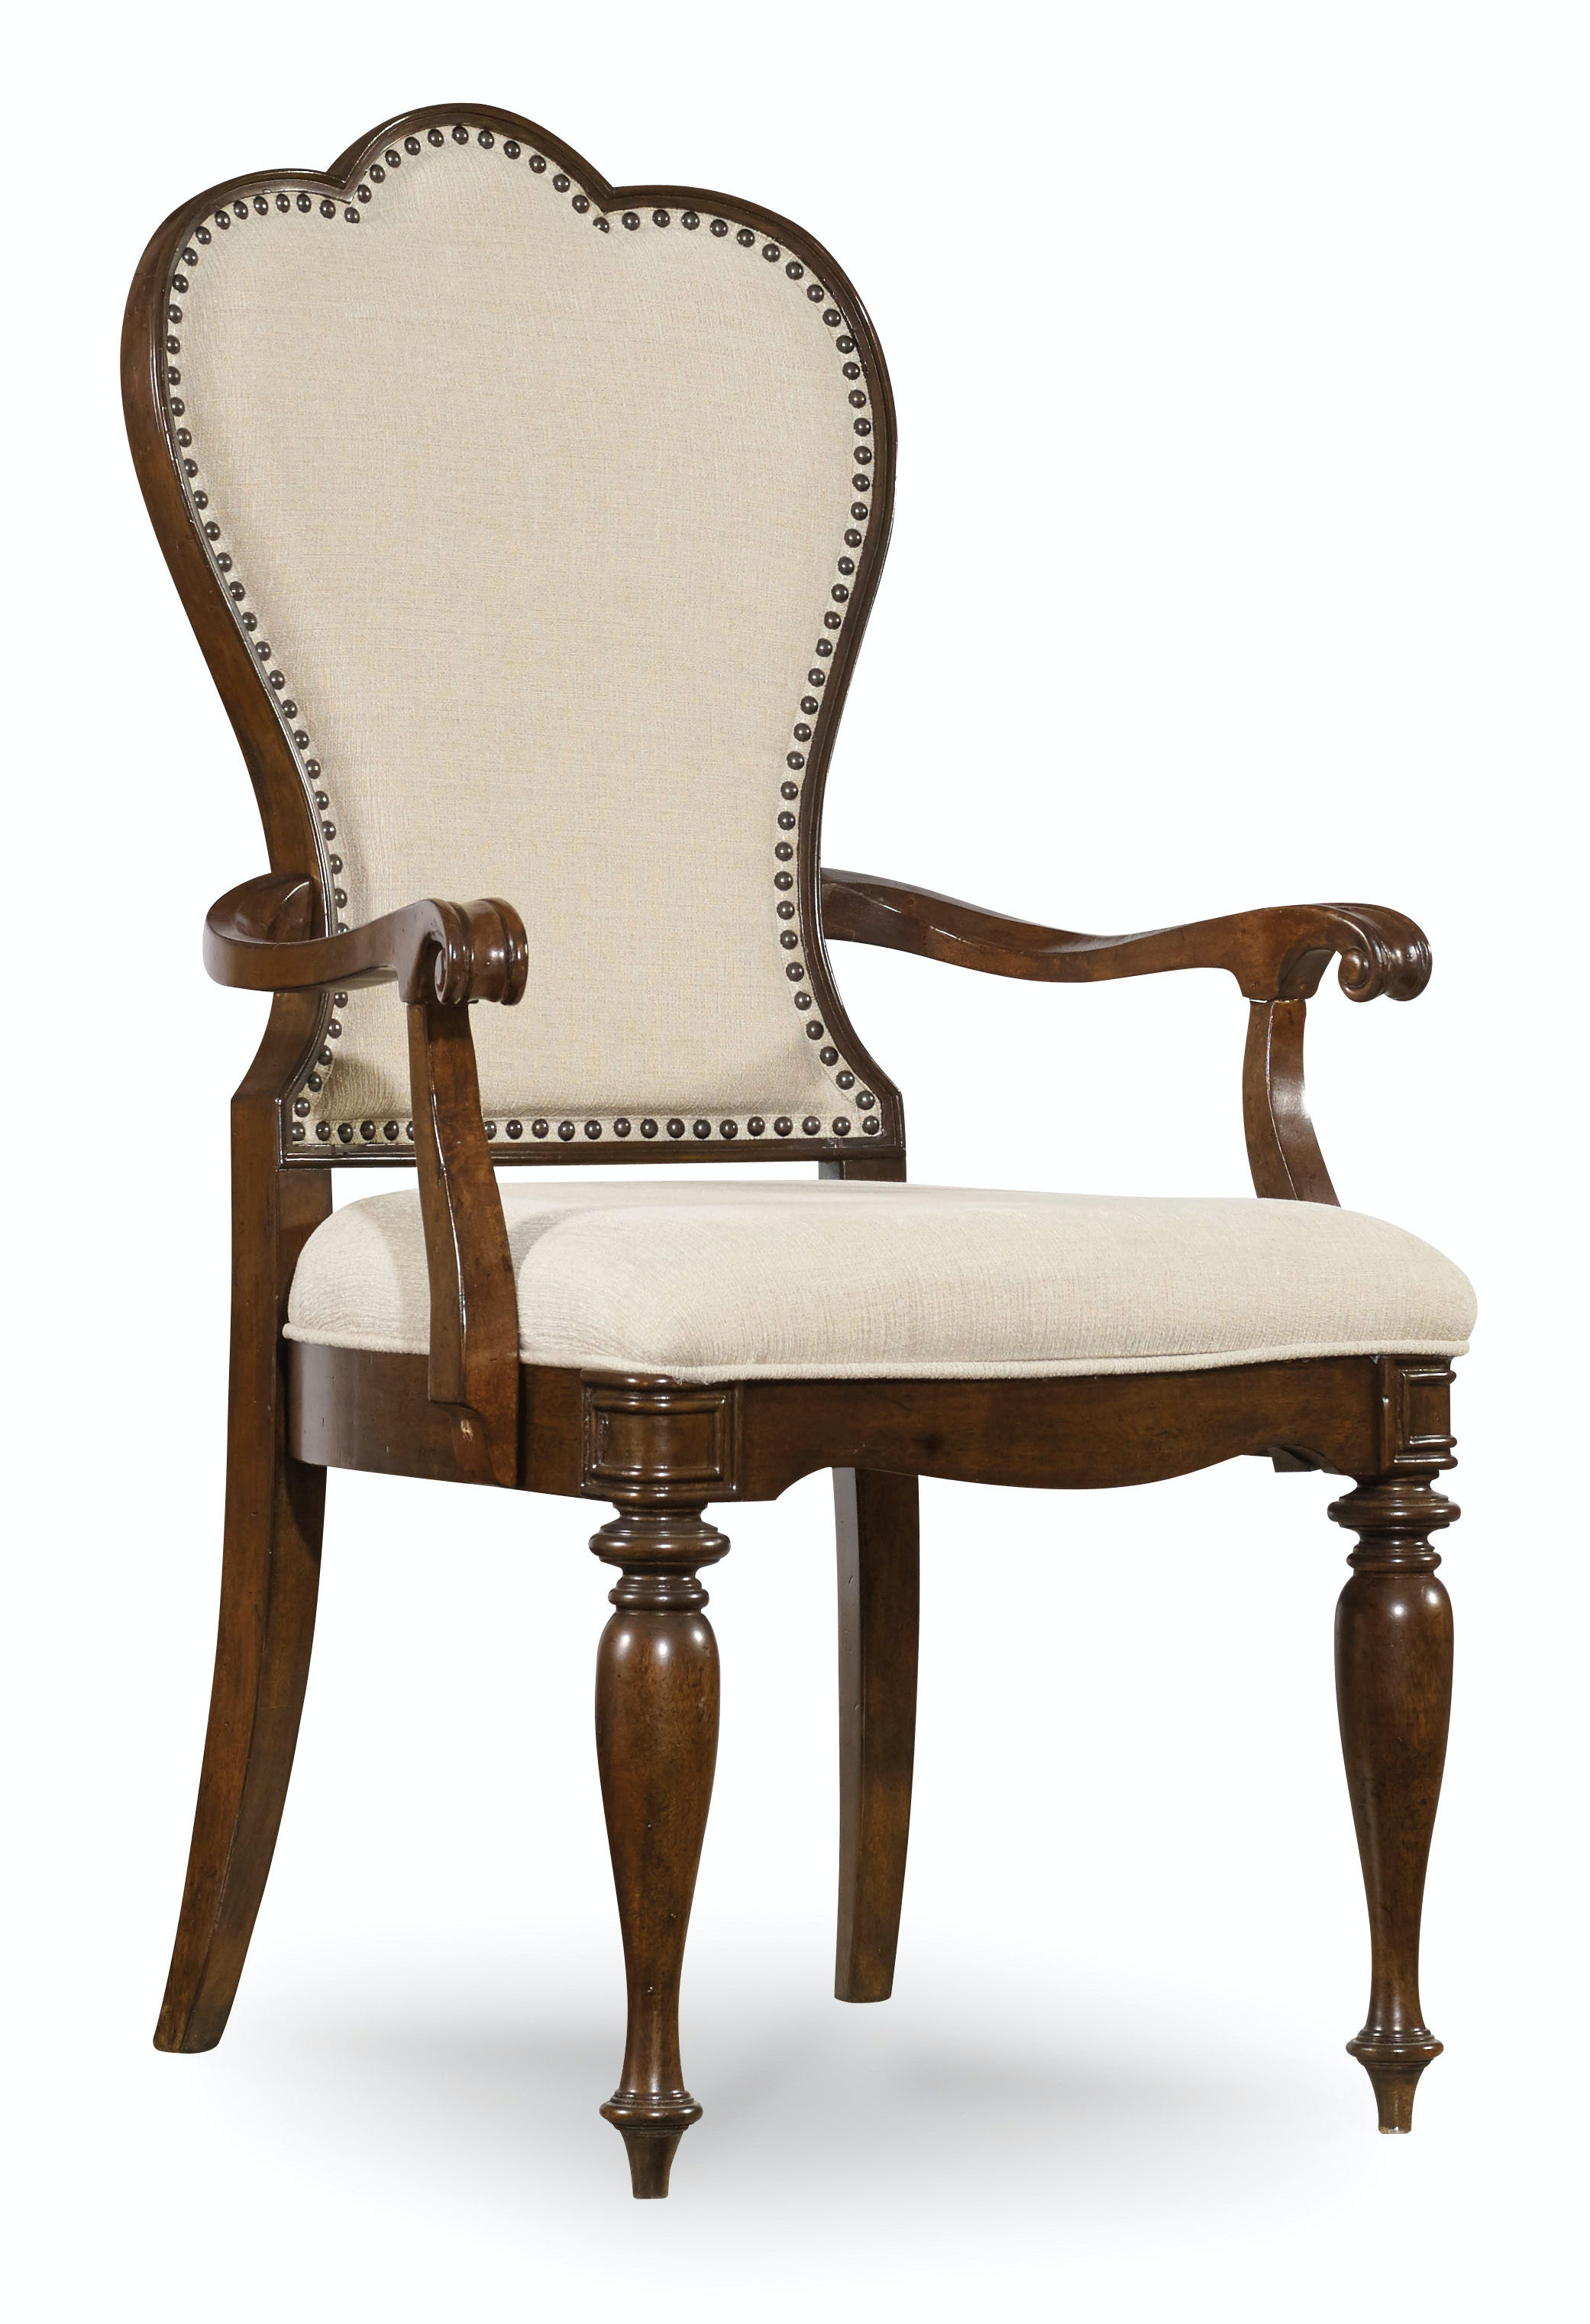 Superb Hooker Furniture Dining Room Leesburg Upholstered Arm Chair 5381 75400 At  Lauters Fine Furniture